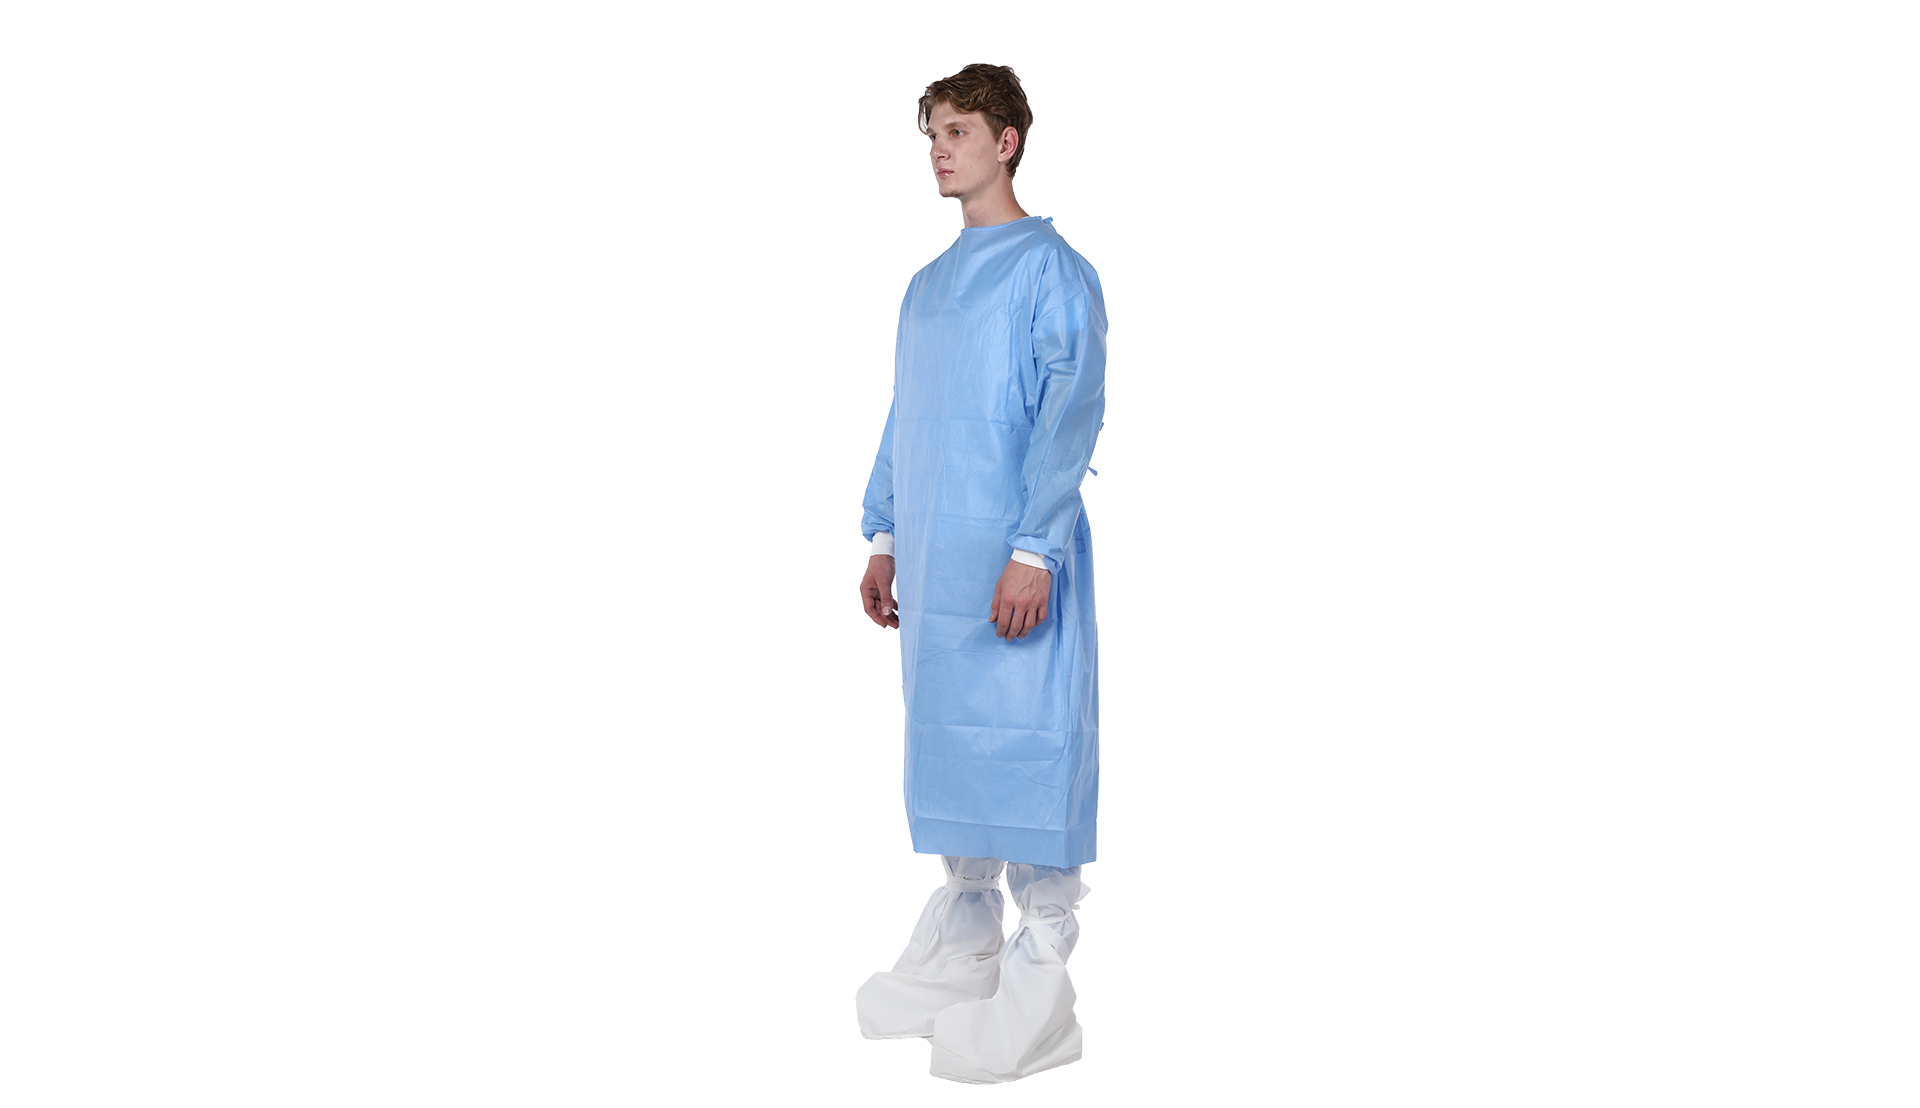 AAMI LEVE3 Surgical Gown